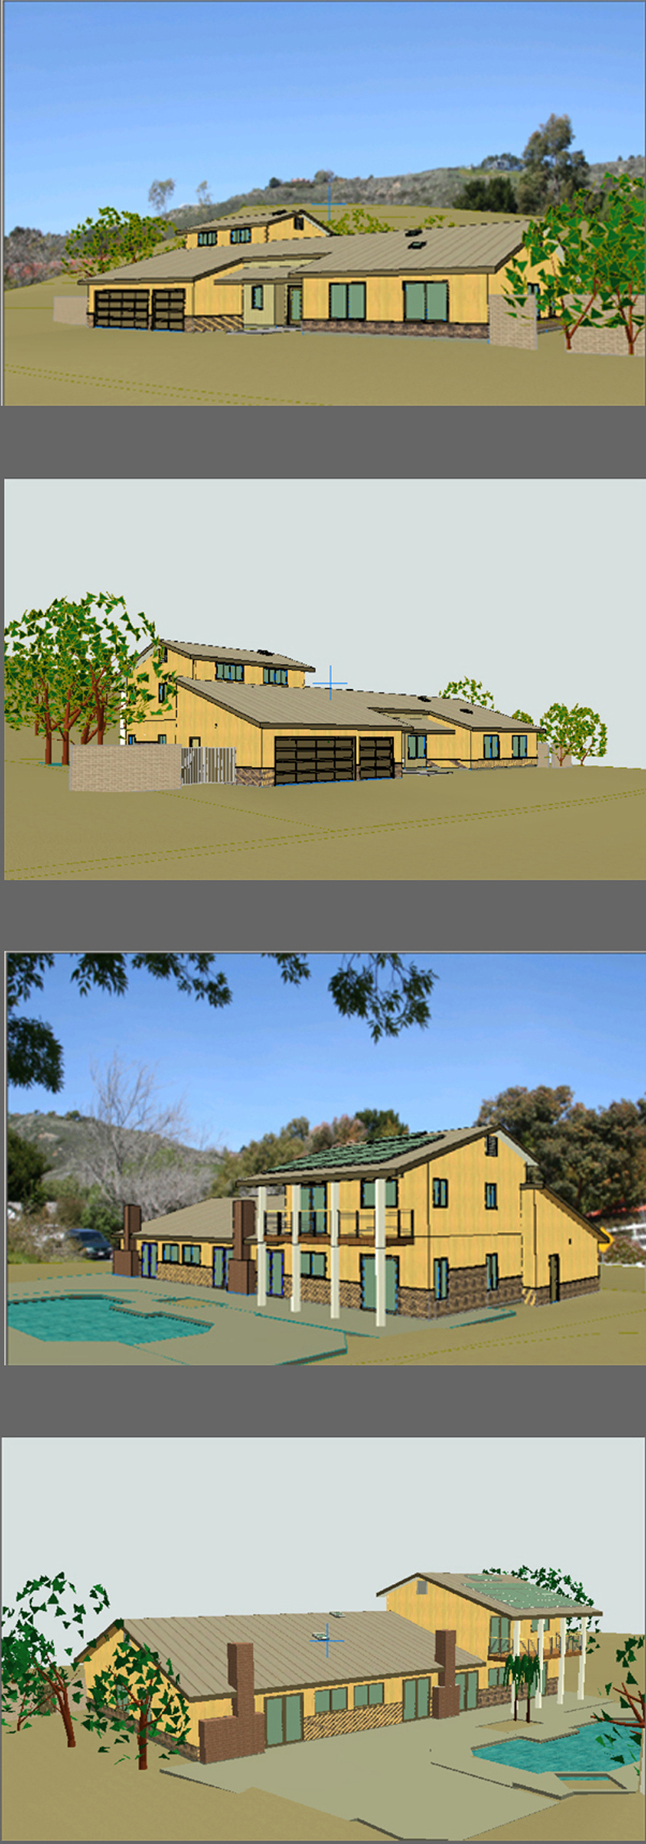 2-Story Addition, Whole House Remodel & Landscape - ENR architects - Thousand Oaks, CA 91360 - CAD Model